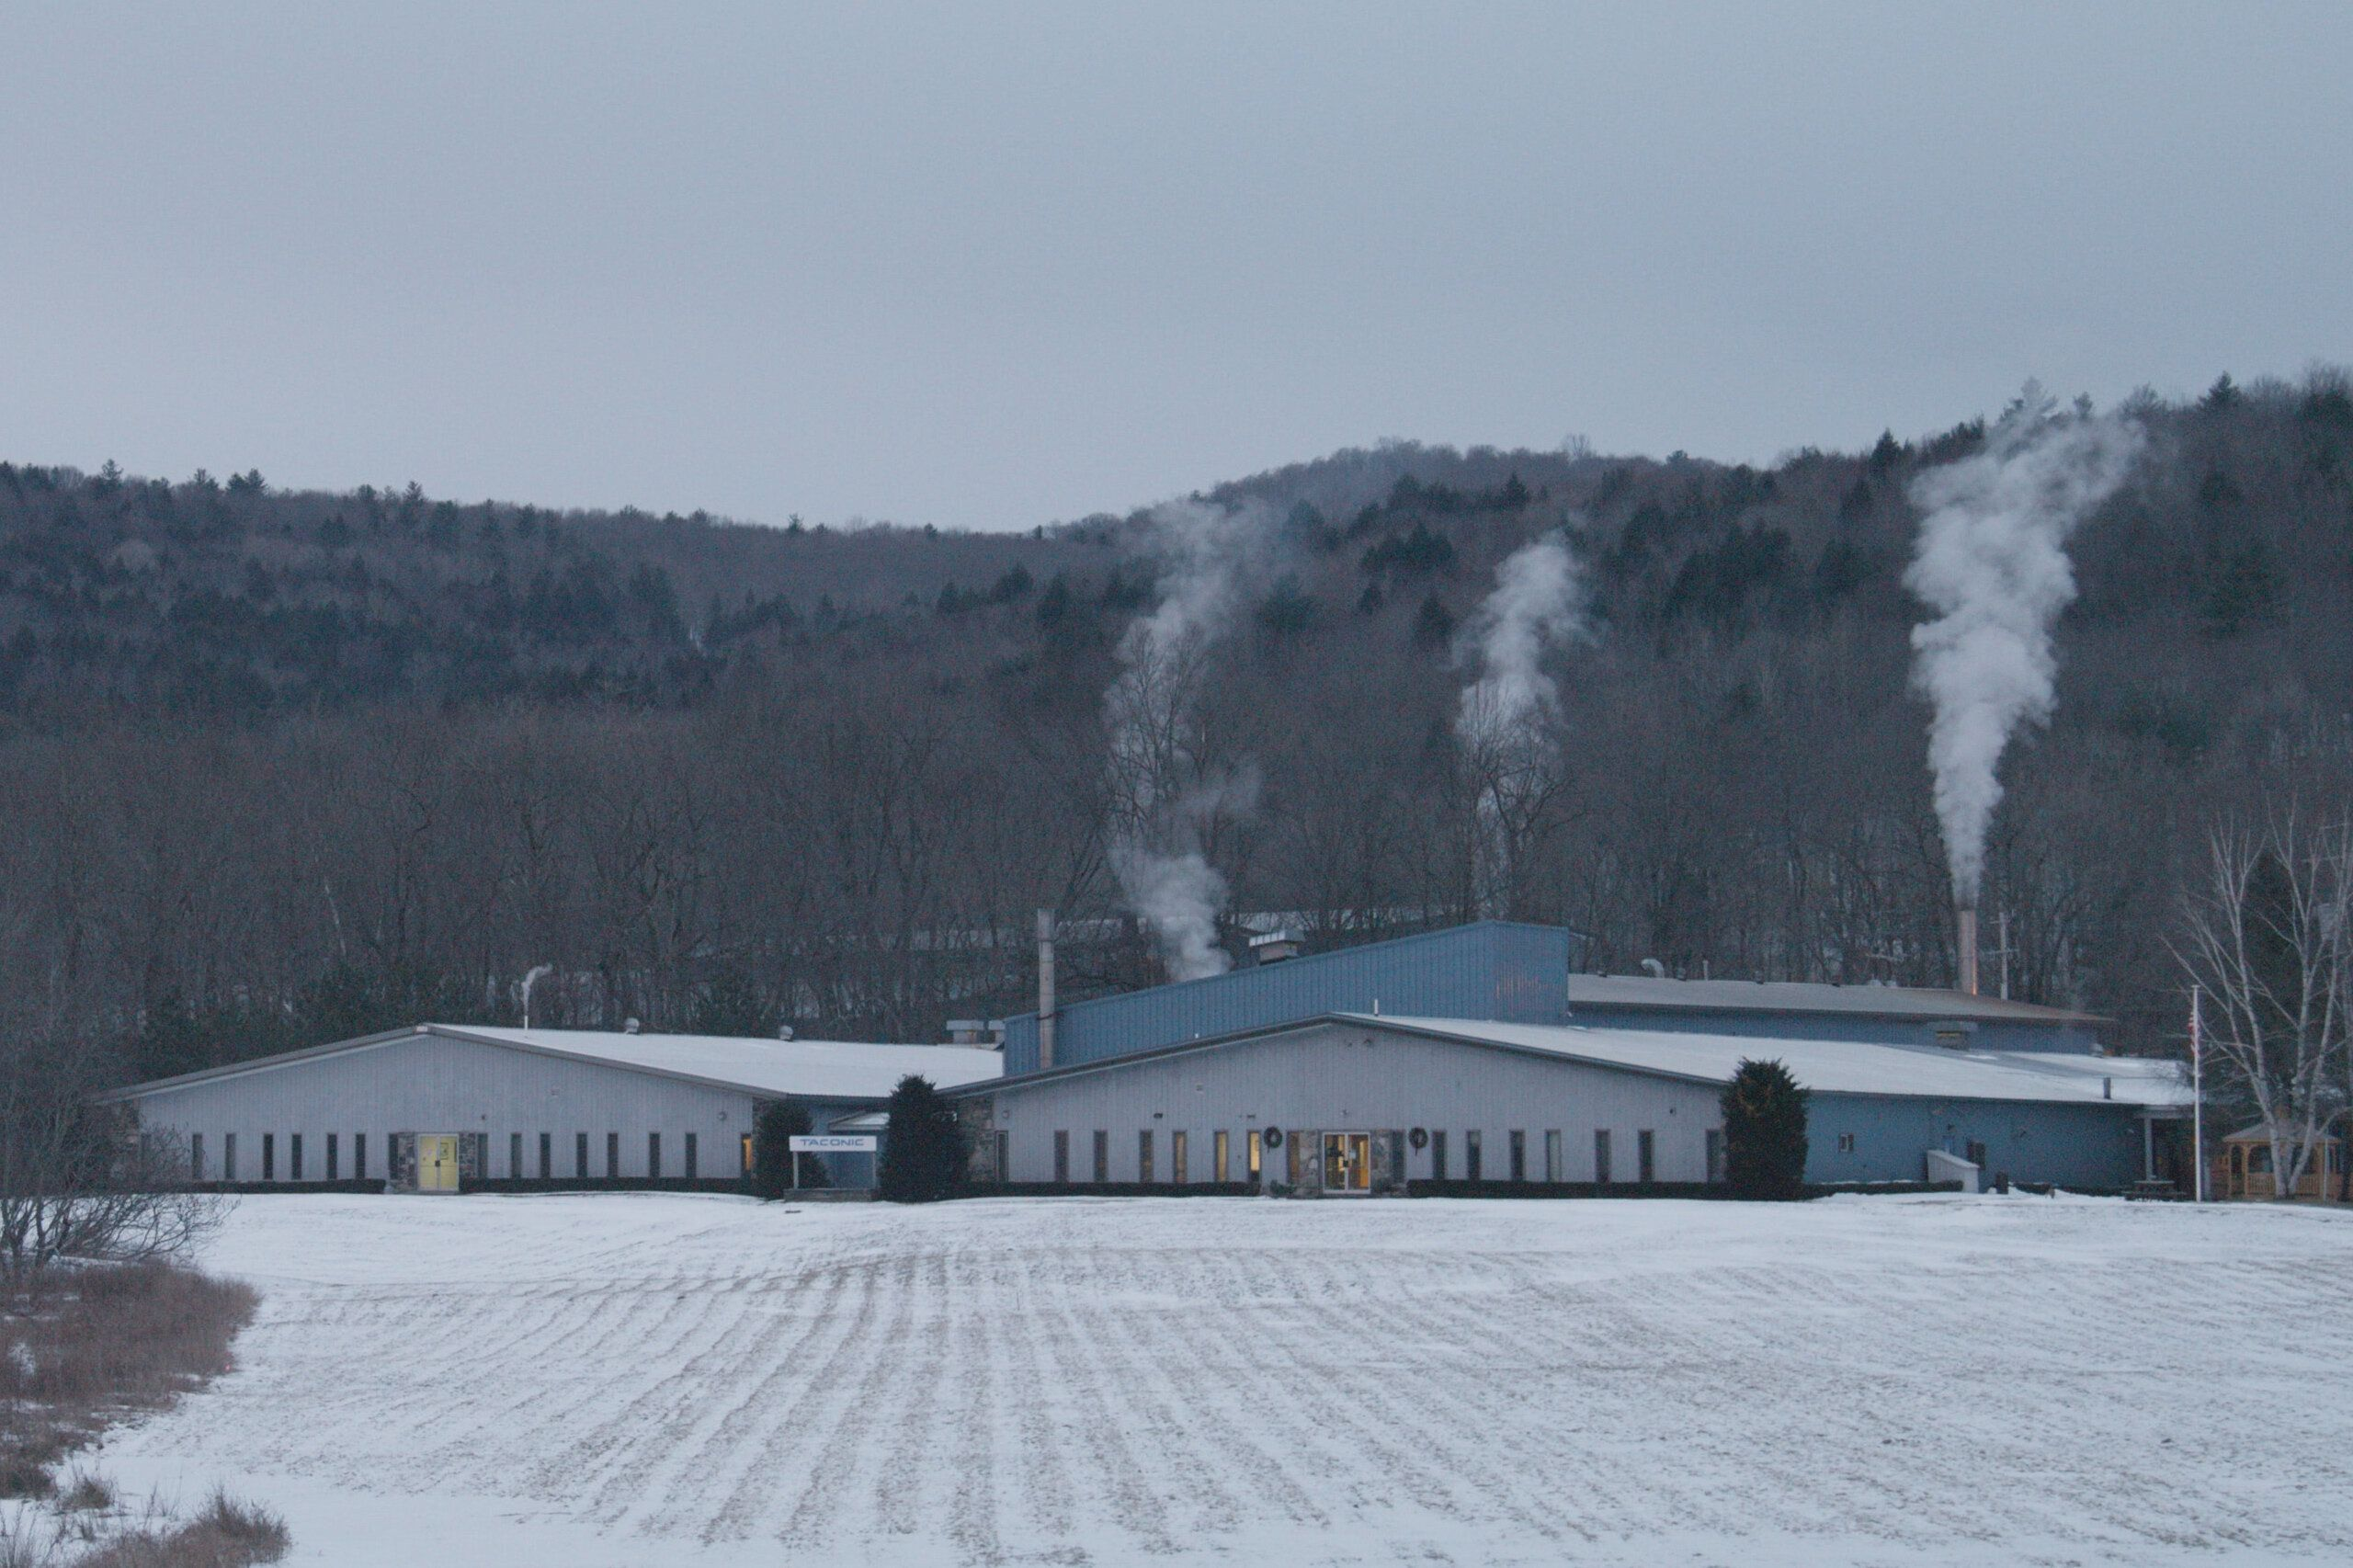 Taconic Plastics plant in Petersburgh, New York, where PFOA was used until 2013.